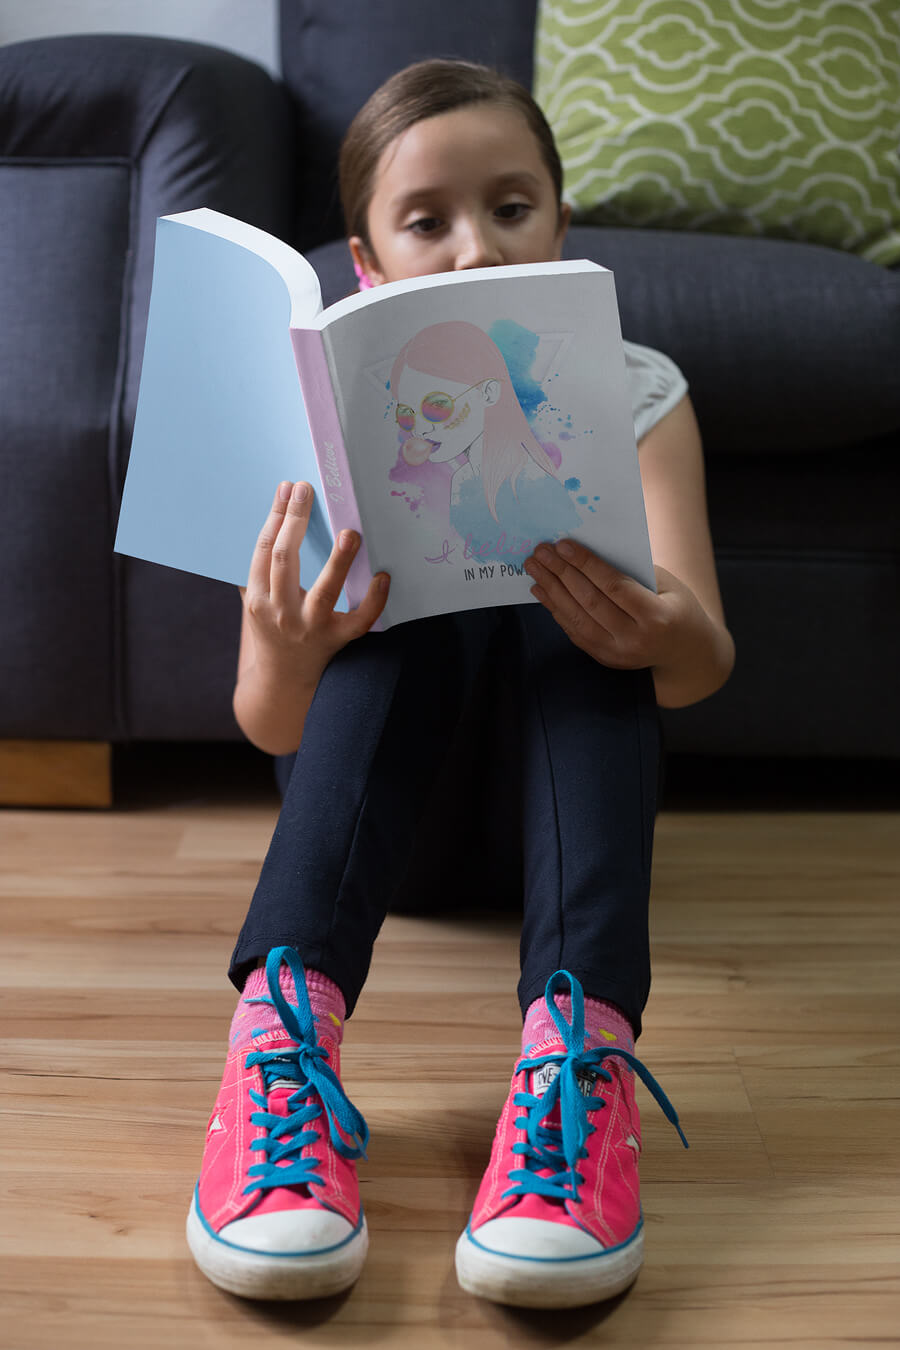 Girl Reading a Book While Sitting